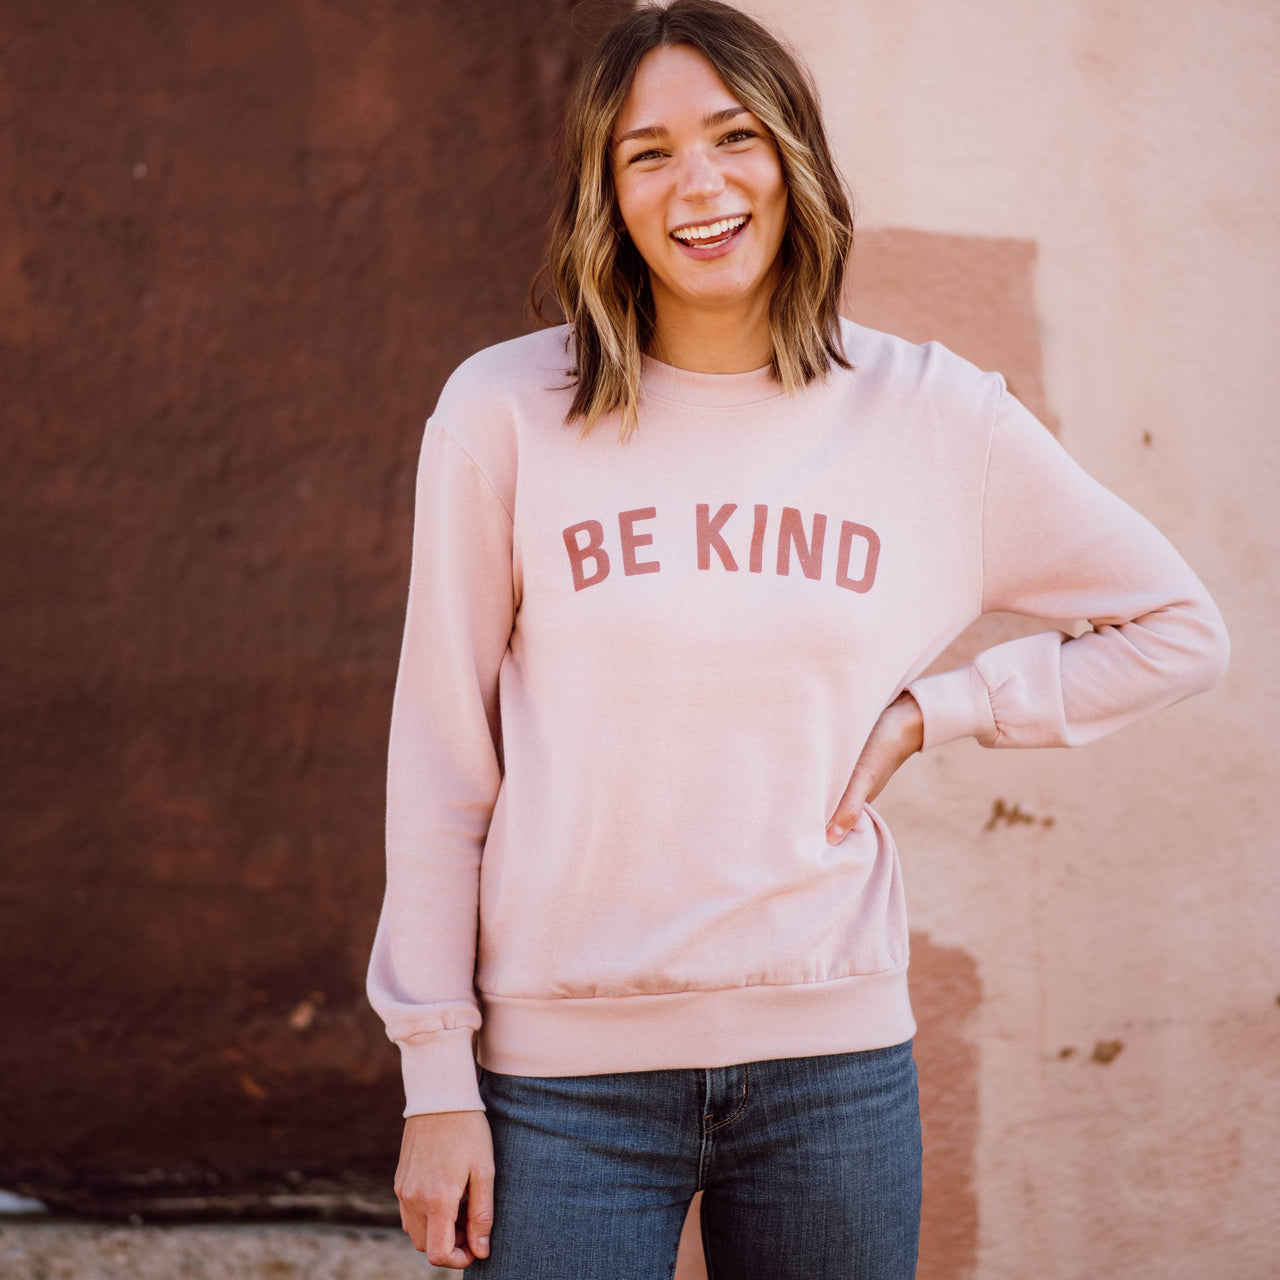 Be Kind Women's Sweatshirt - faded pink